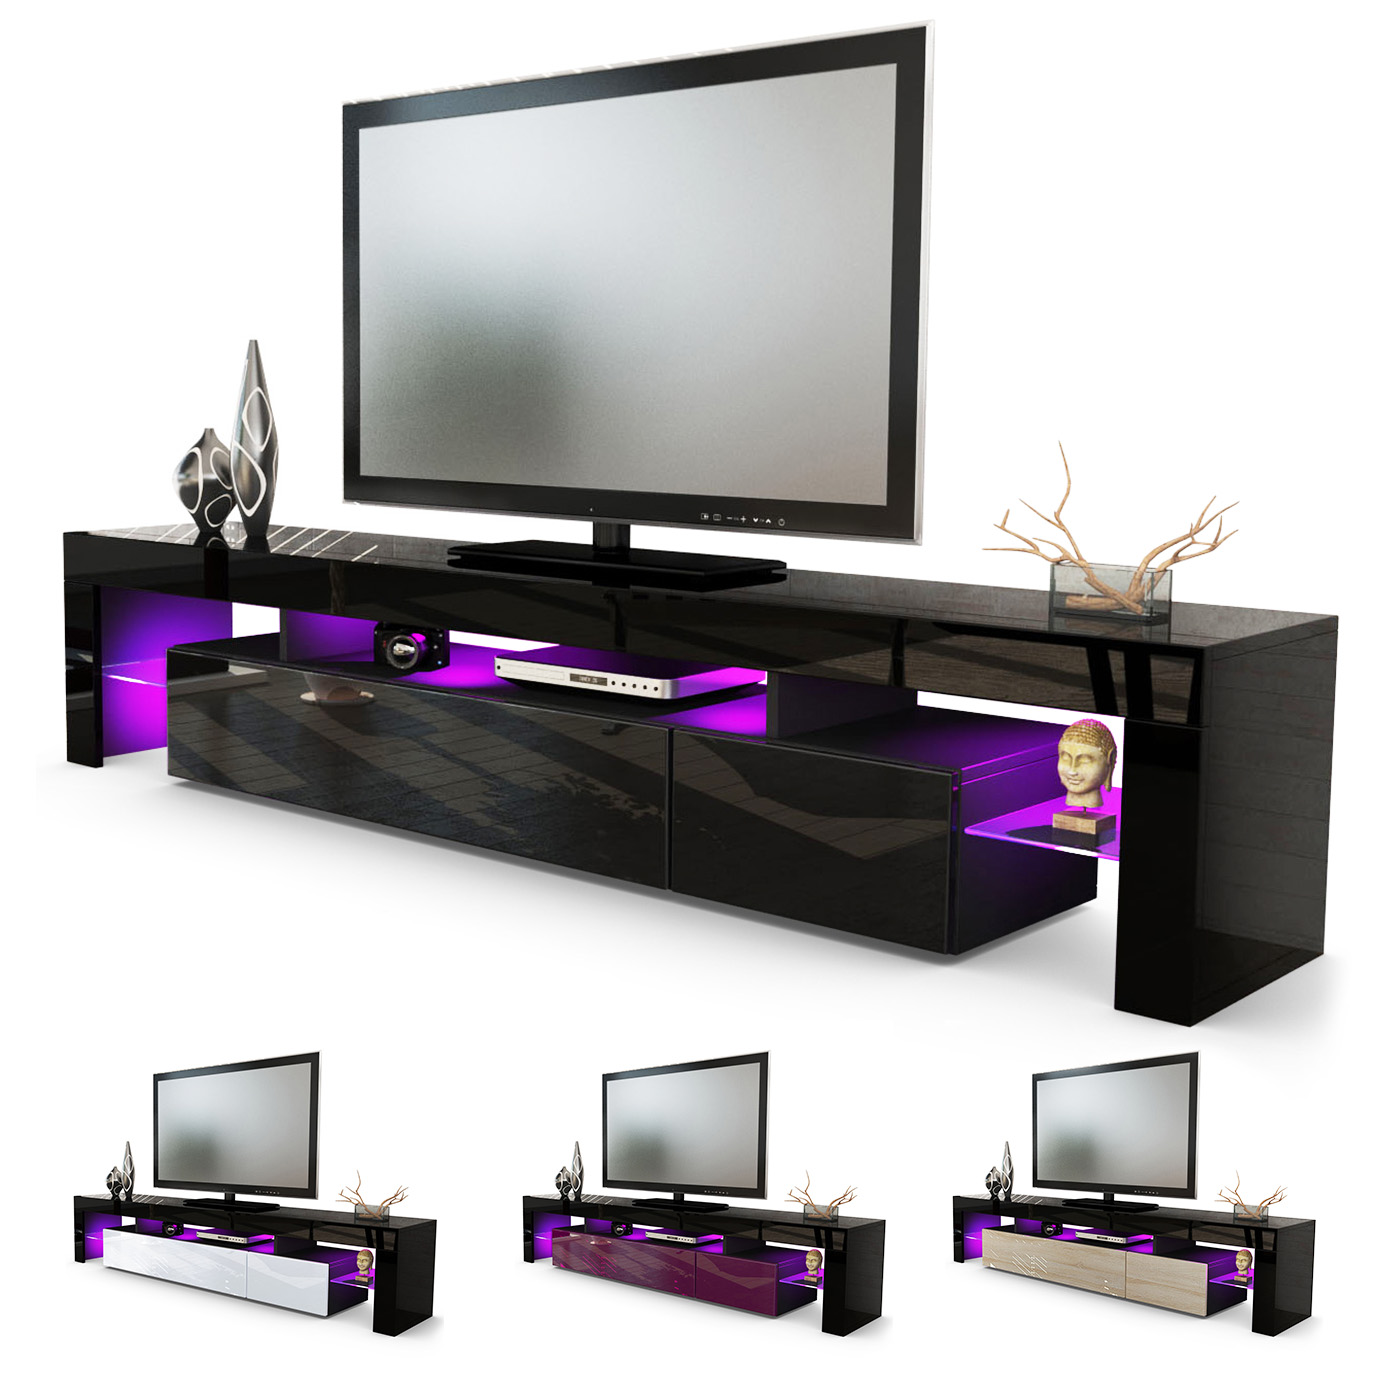 tv board lowboard kommode sideboard lima v2 in schwarz hochglanz naturt ne ebay. Black Bedroom Furniture Sets. Home Design Ideas